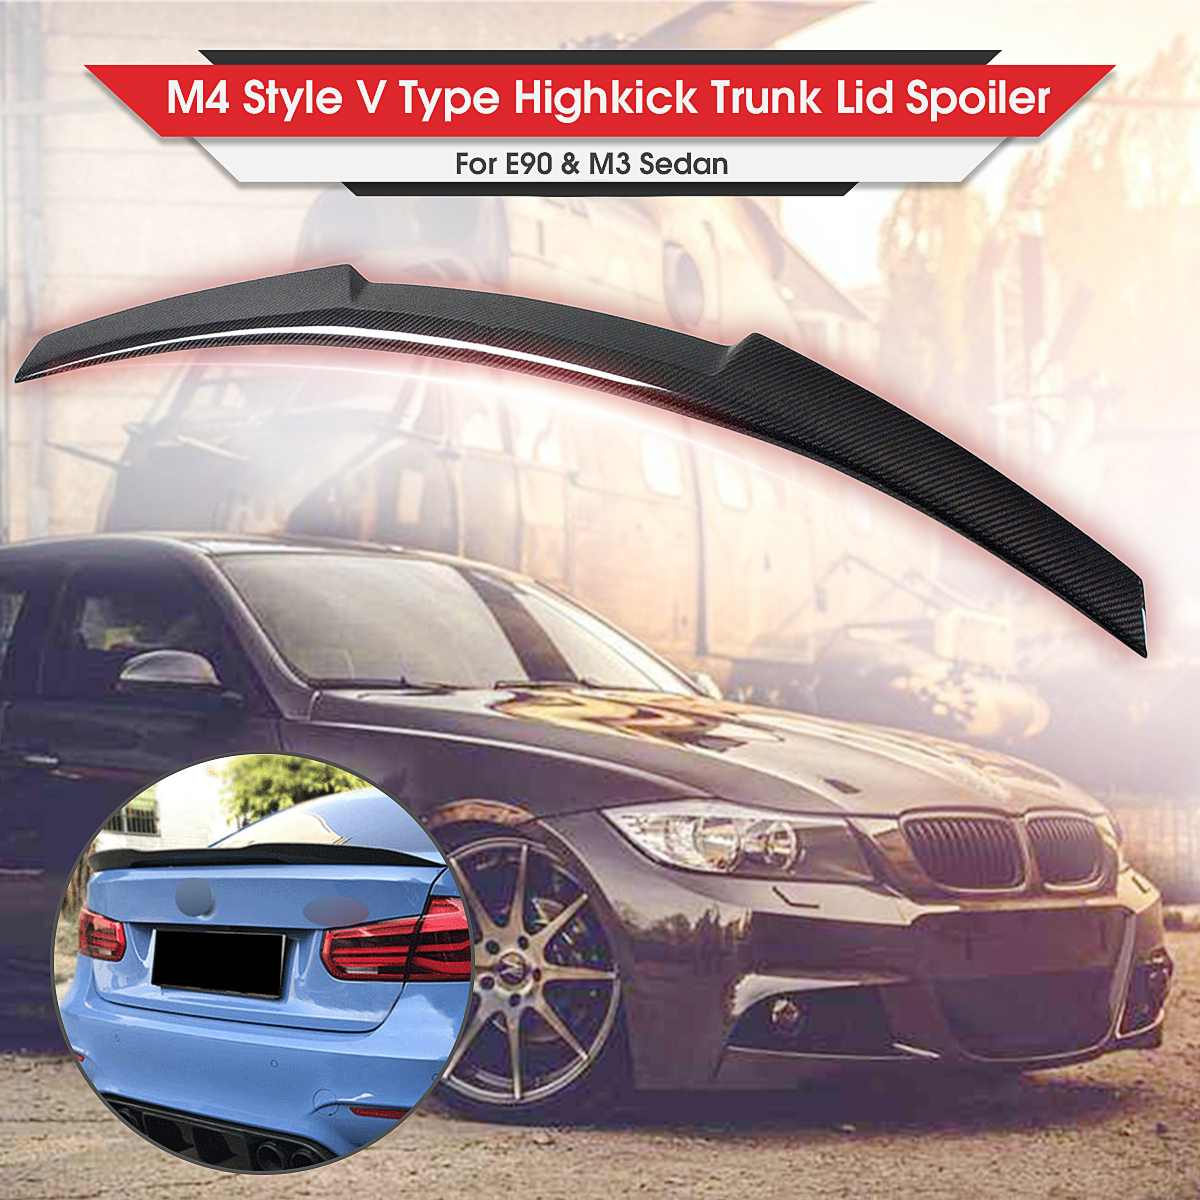 New M4 Style V Type Real Carbon Fiber E90 Car Rear Trunk Boot Lid Spoiler Wing For BMW E90 325i 328i 3 Series Sedan 2006-2011 image